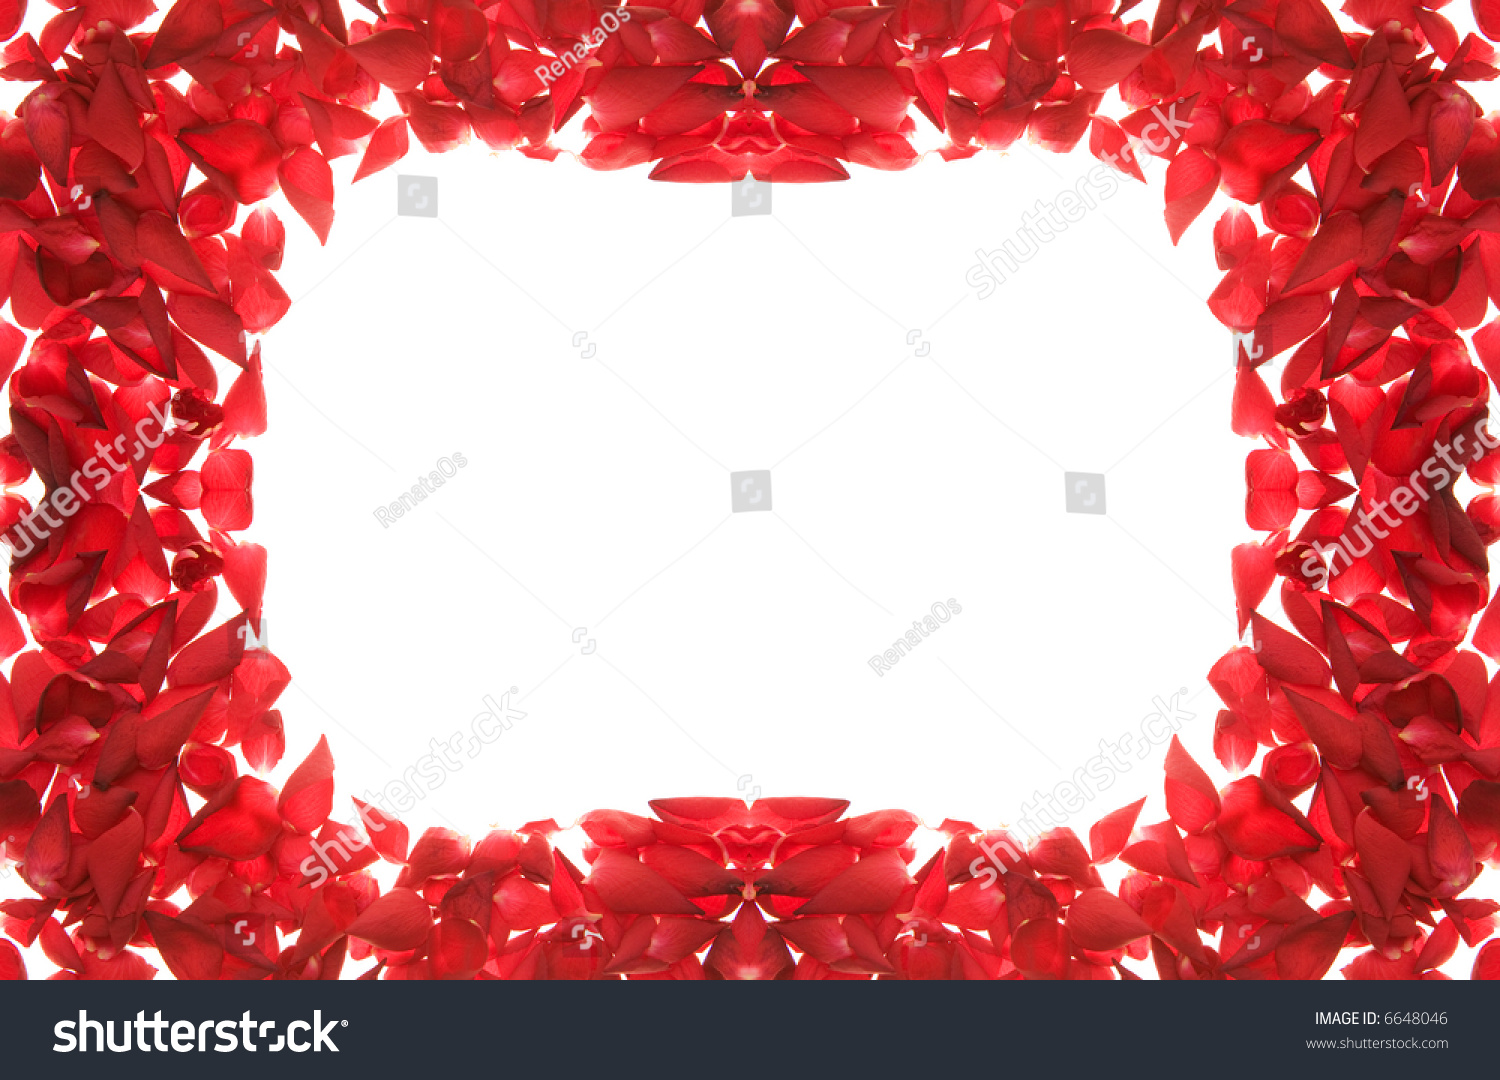 Red gift bows border with clipping path for easy background removing - Red Rose Petals Frame Isolated On White